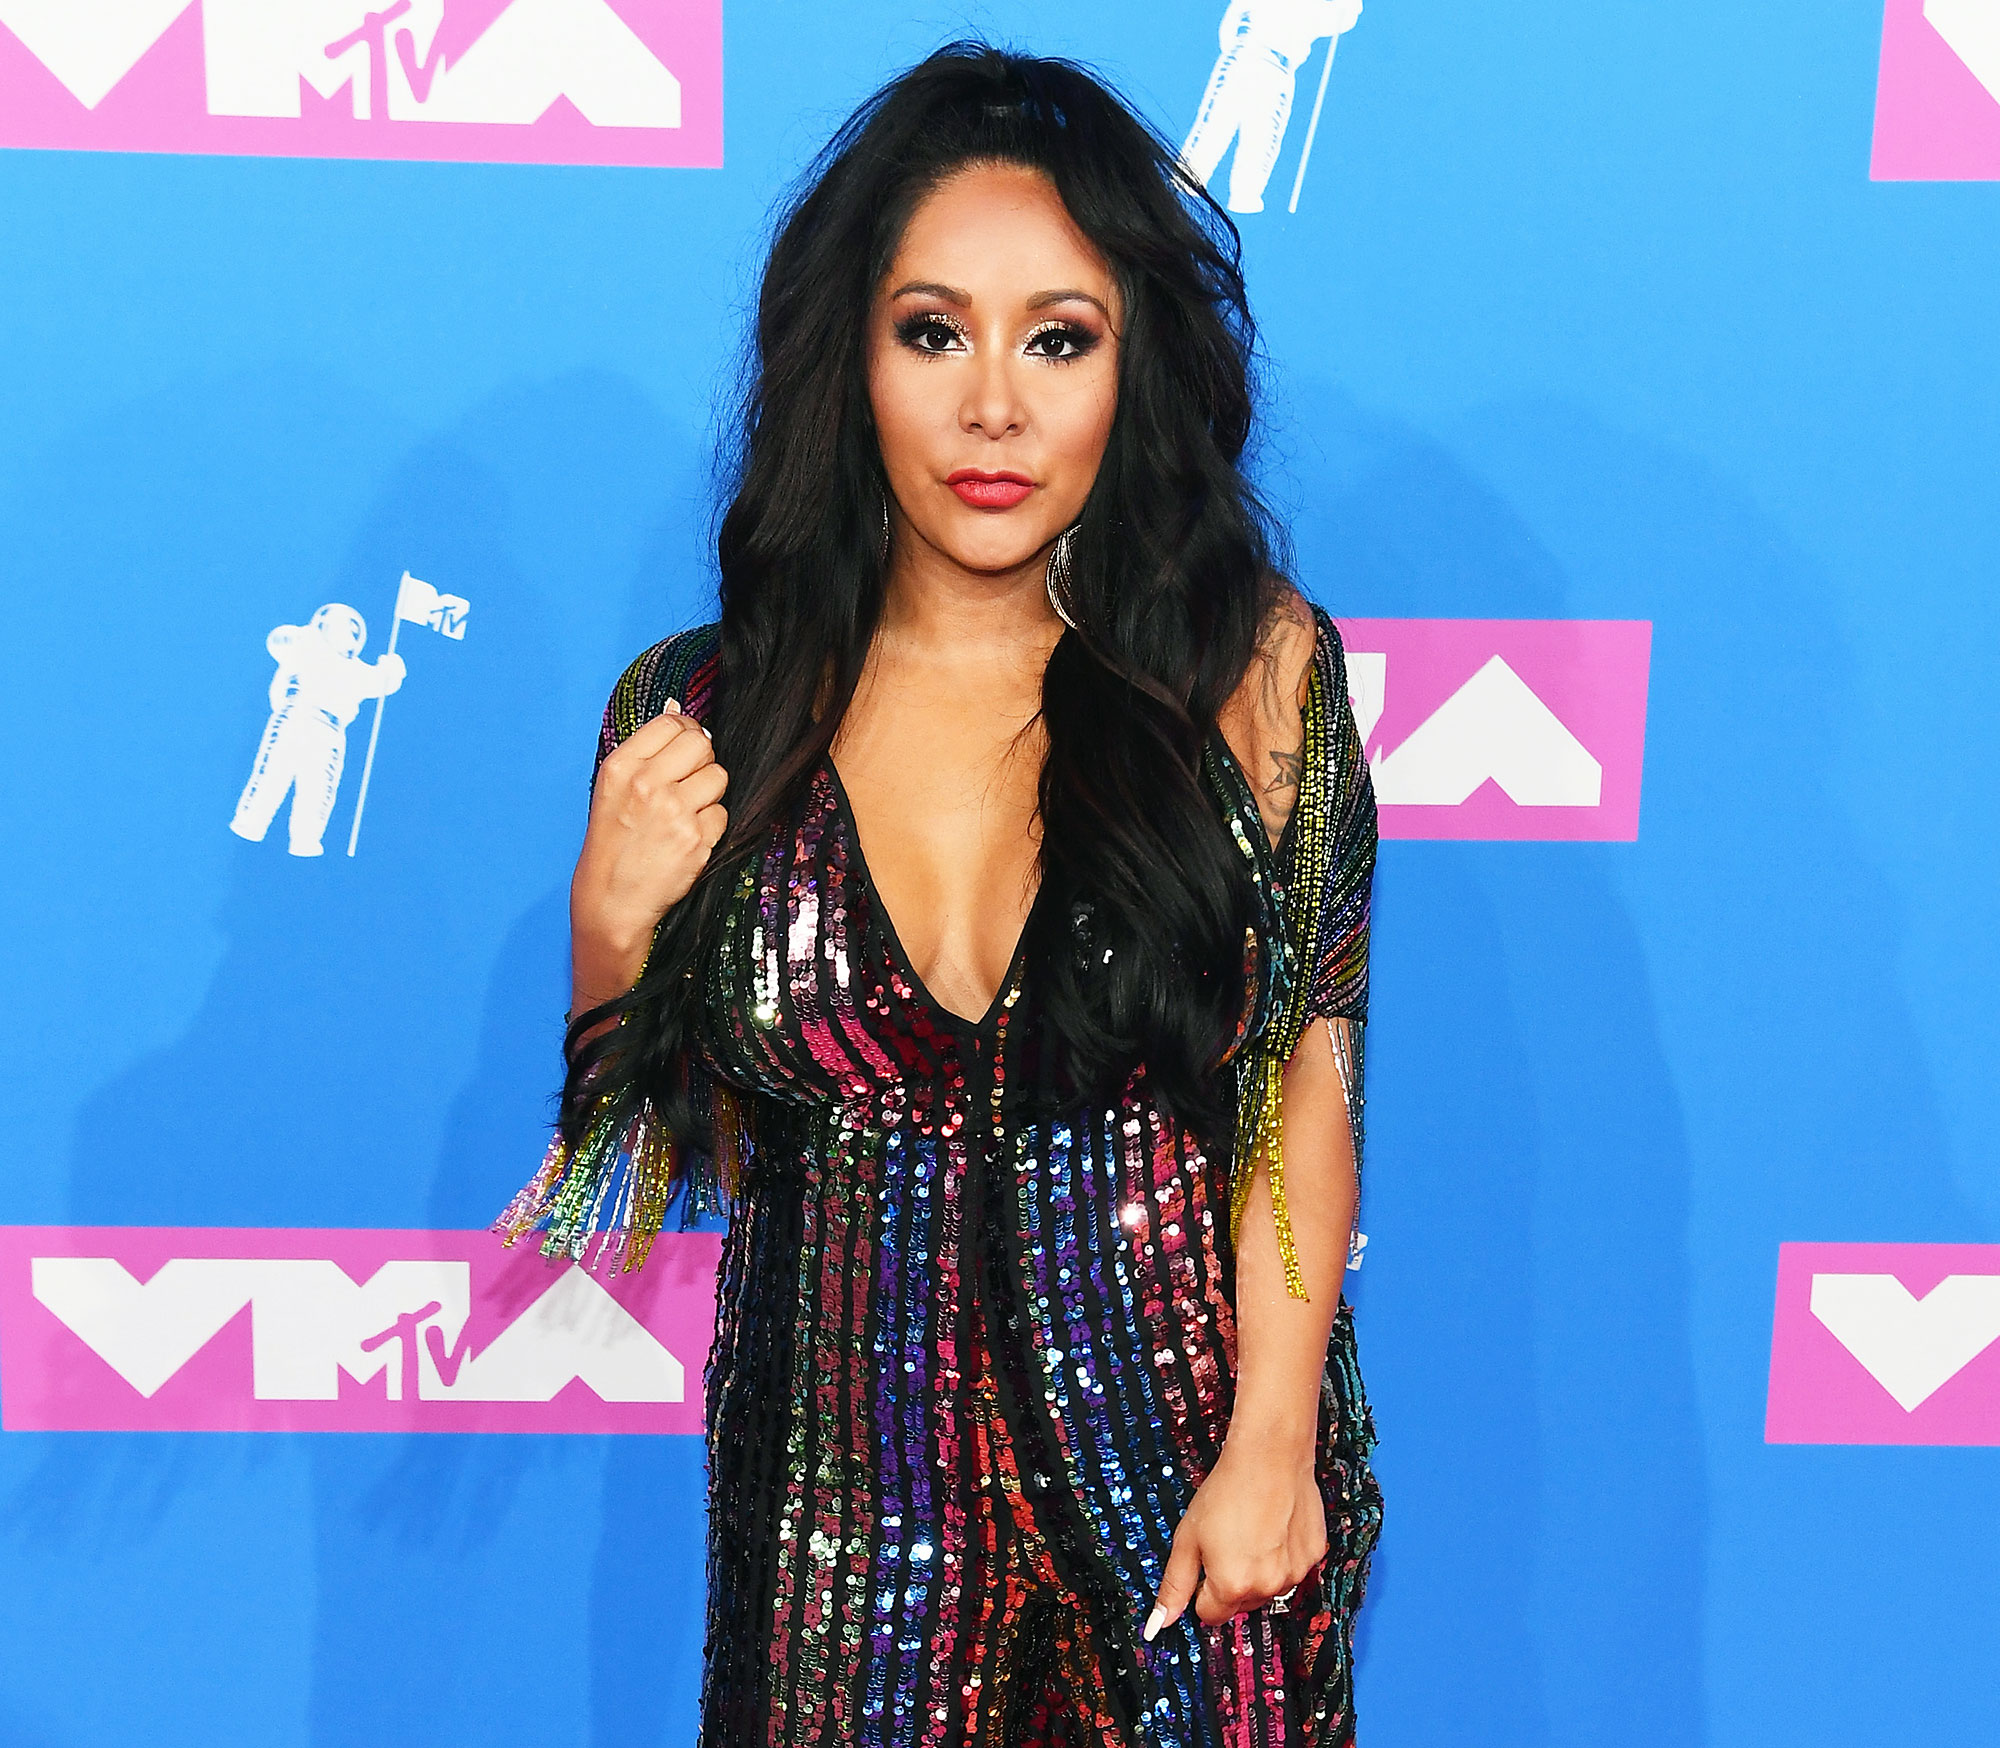 Pussy Is a cute Snooki naked photo 2017